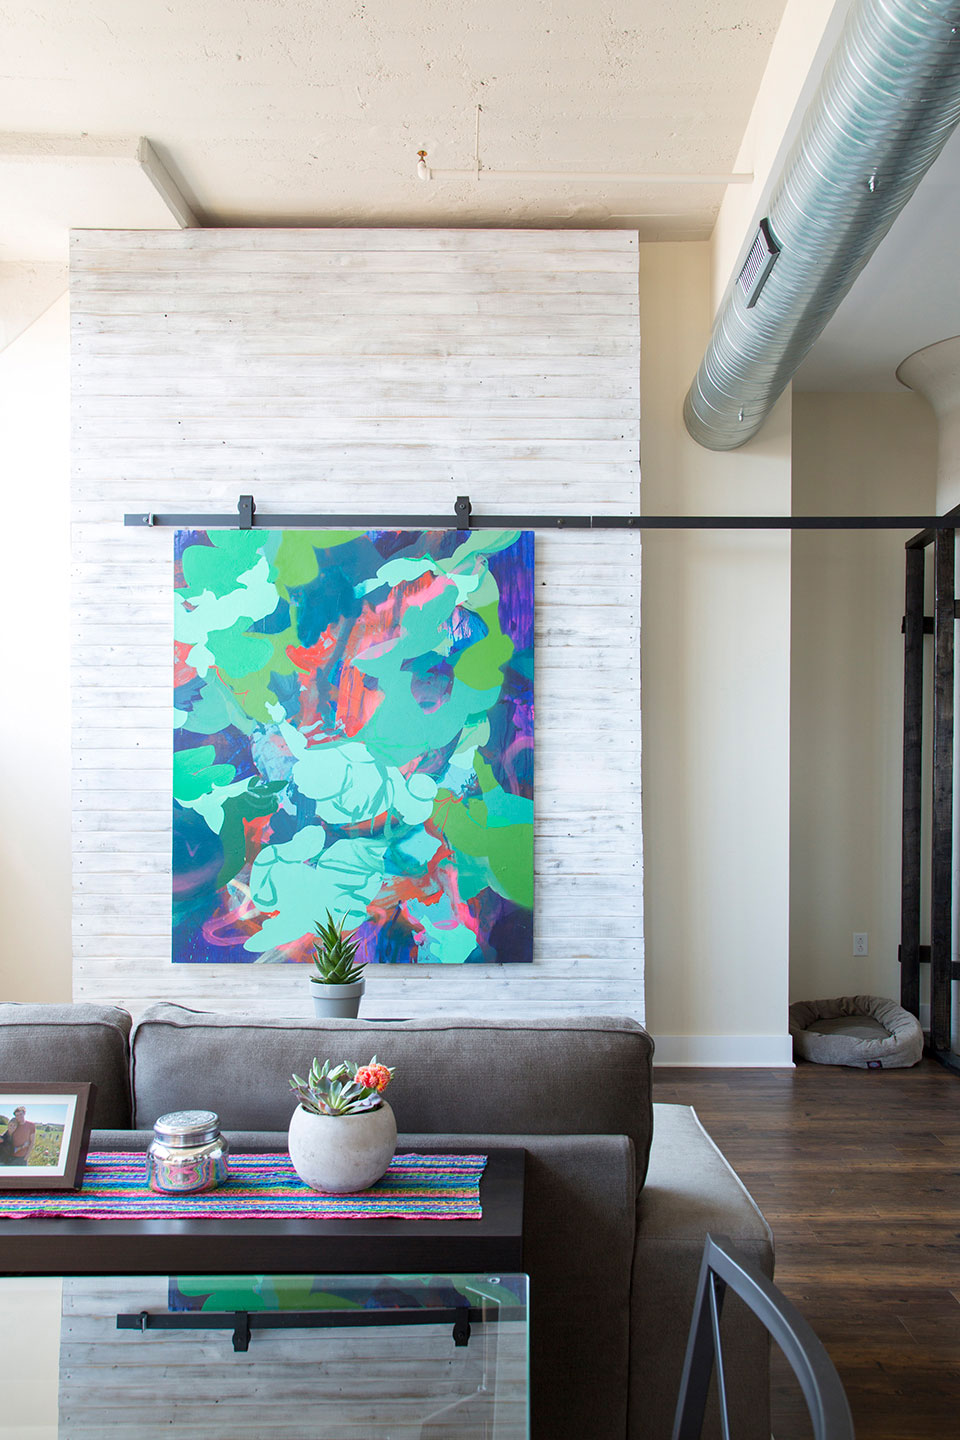 Shape Shifters #1  (in situ) / Private residence /Baltimore, Maryland